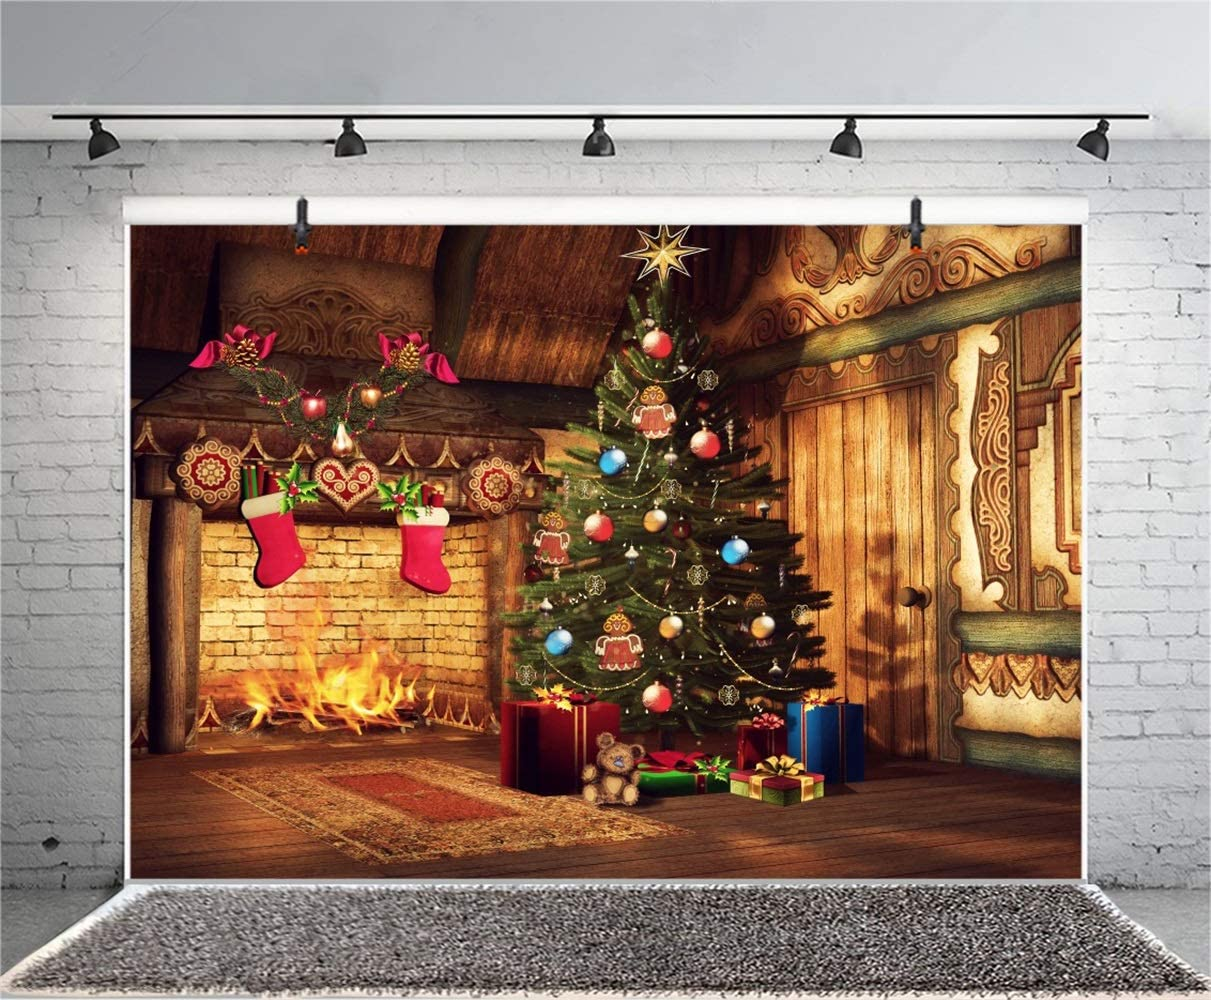 Christmas Theme Backdrop Vinyl 10x7ft Indoor Lighting Xmas Tree Gifts White Sofa Fireplace Mirror Panel Wall Bright Window Background Xmas Party Banner Child Kids Baby Portrait Shoot